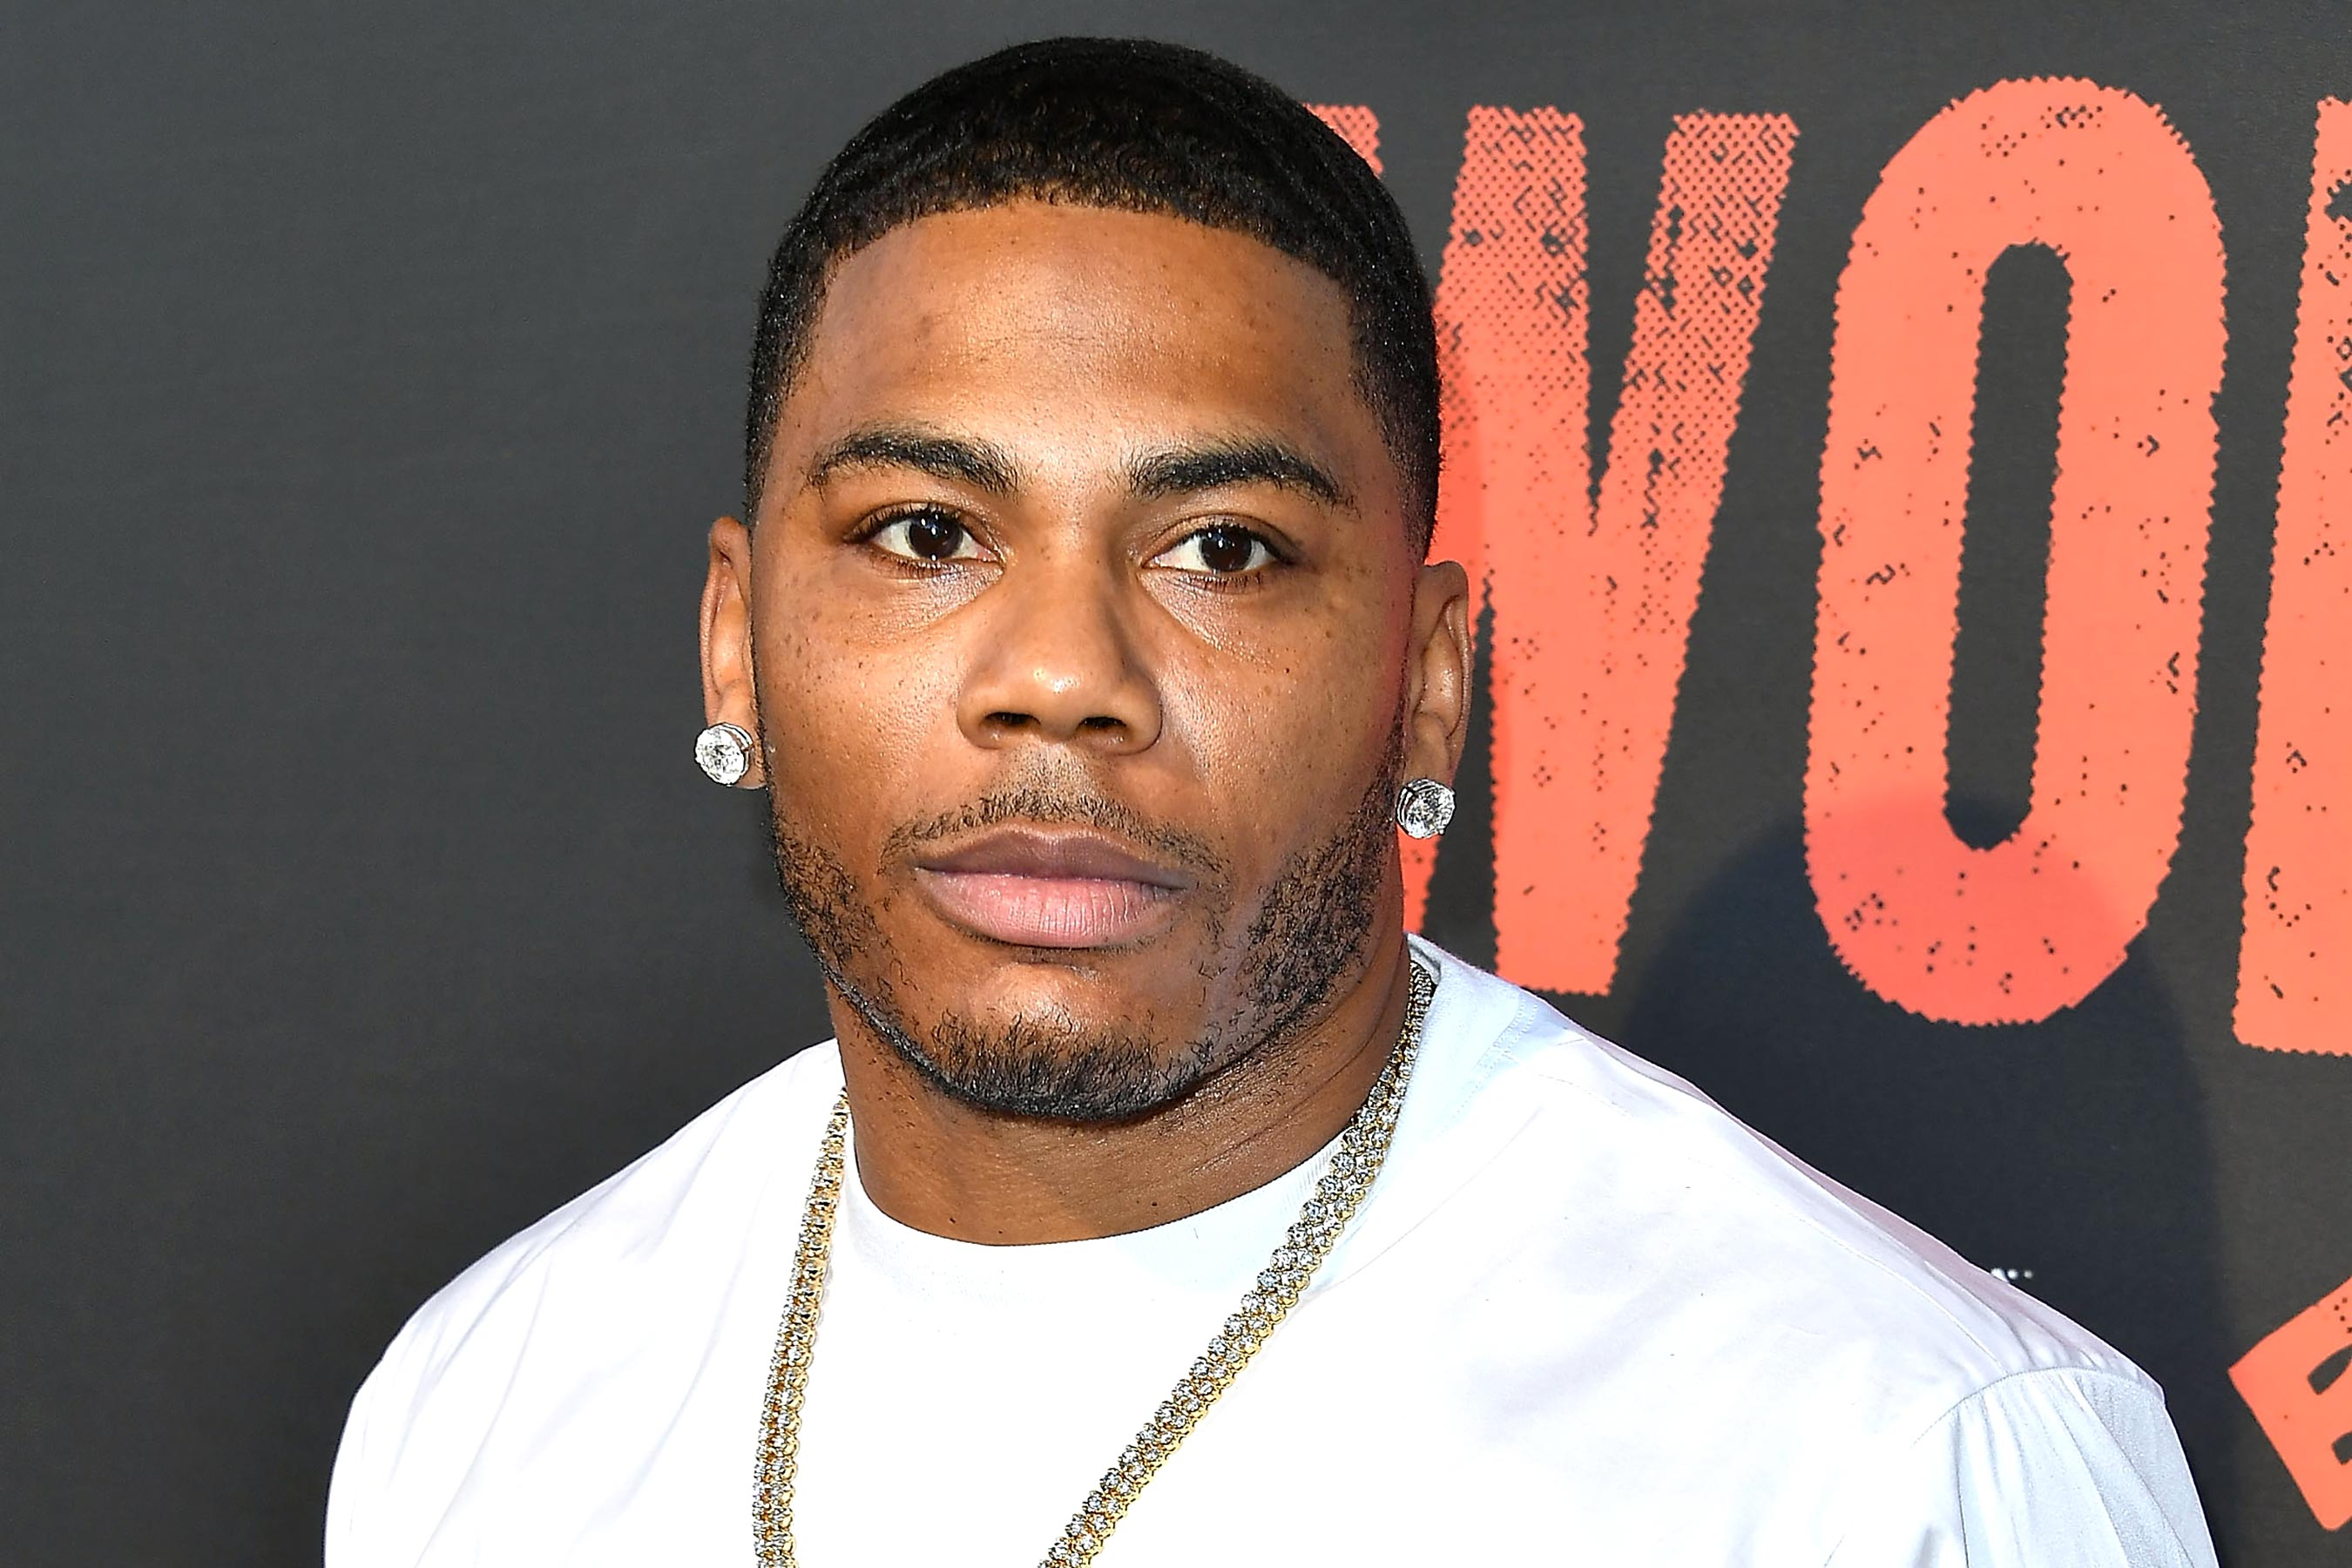 Nelly will pursue legal action after prosecutors decline to file sexual assault charges